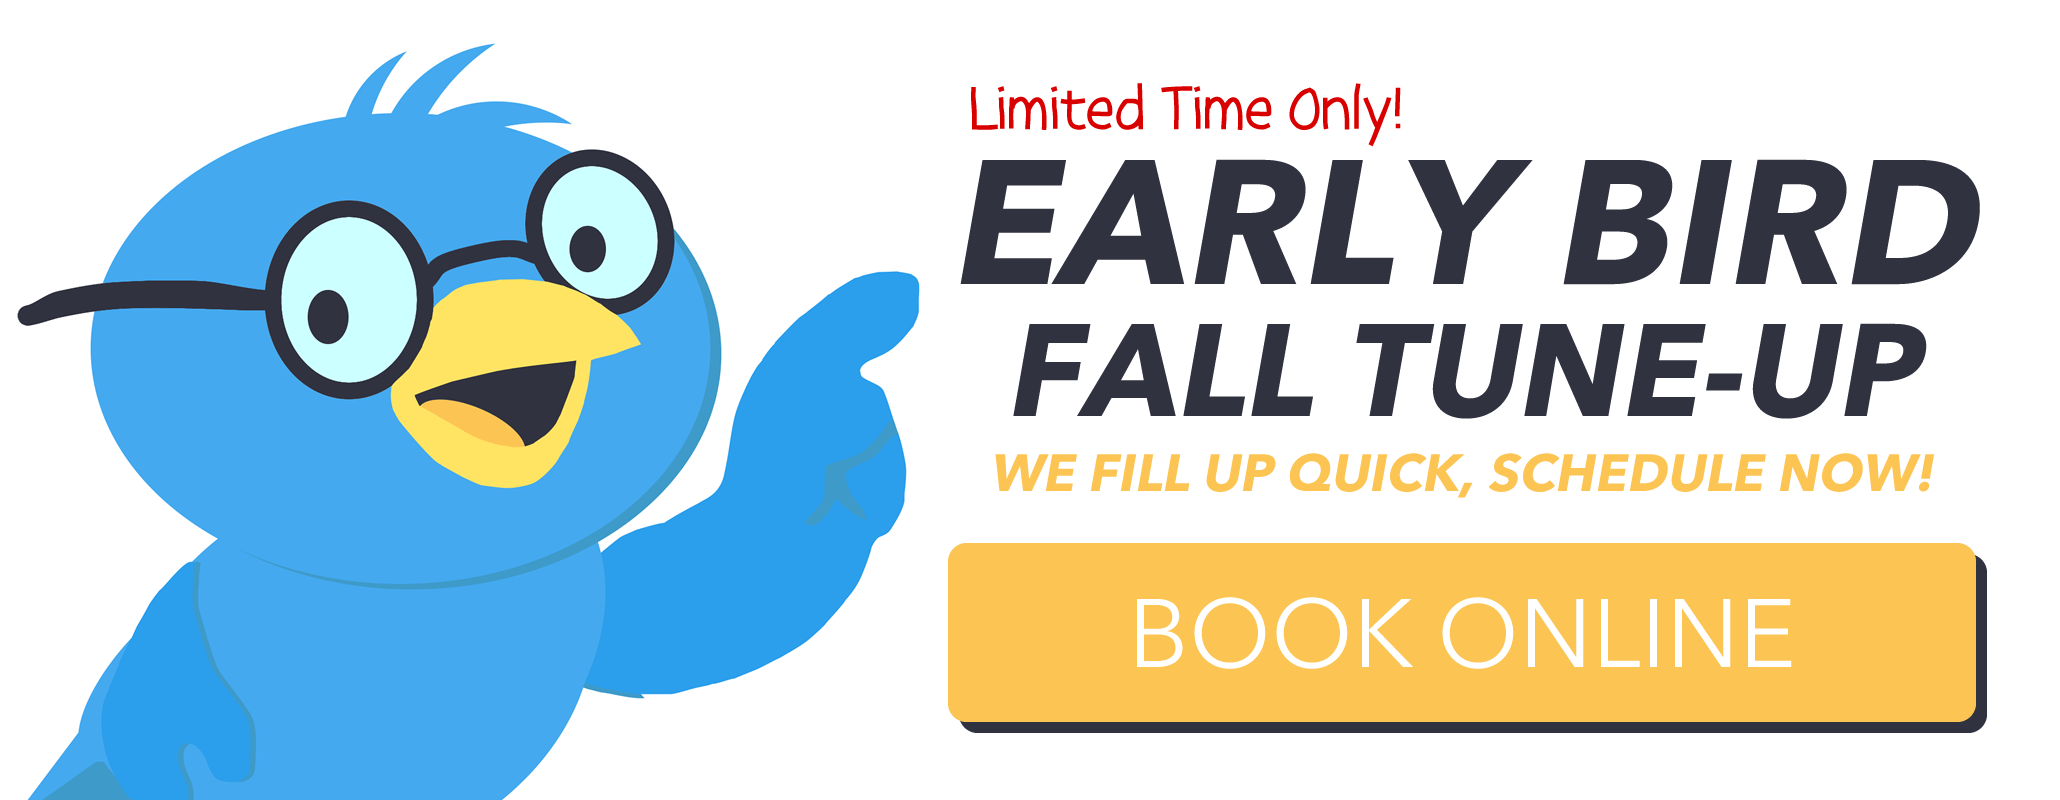 Early Bird Special is on now. We fill up very quick, so book NOW!